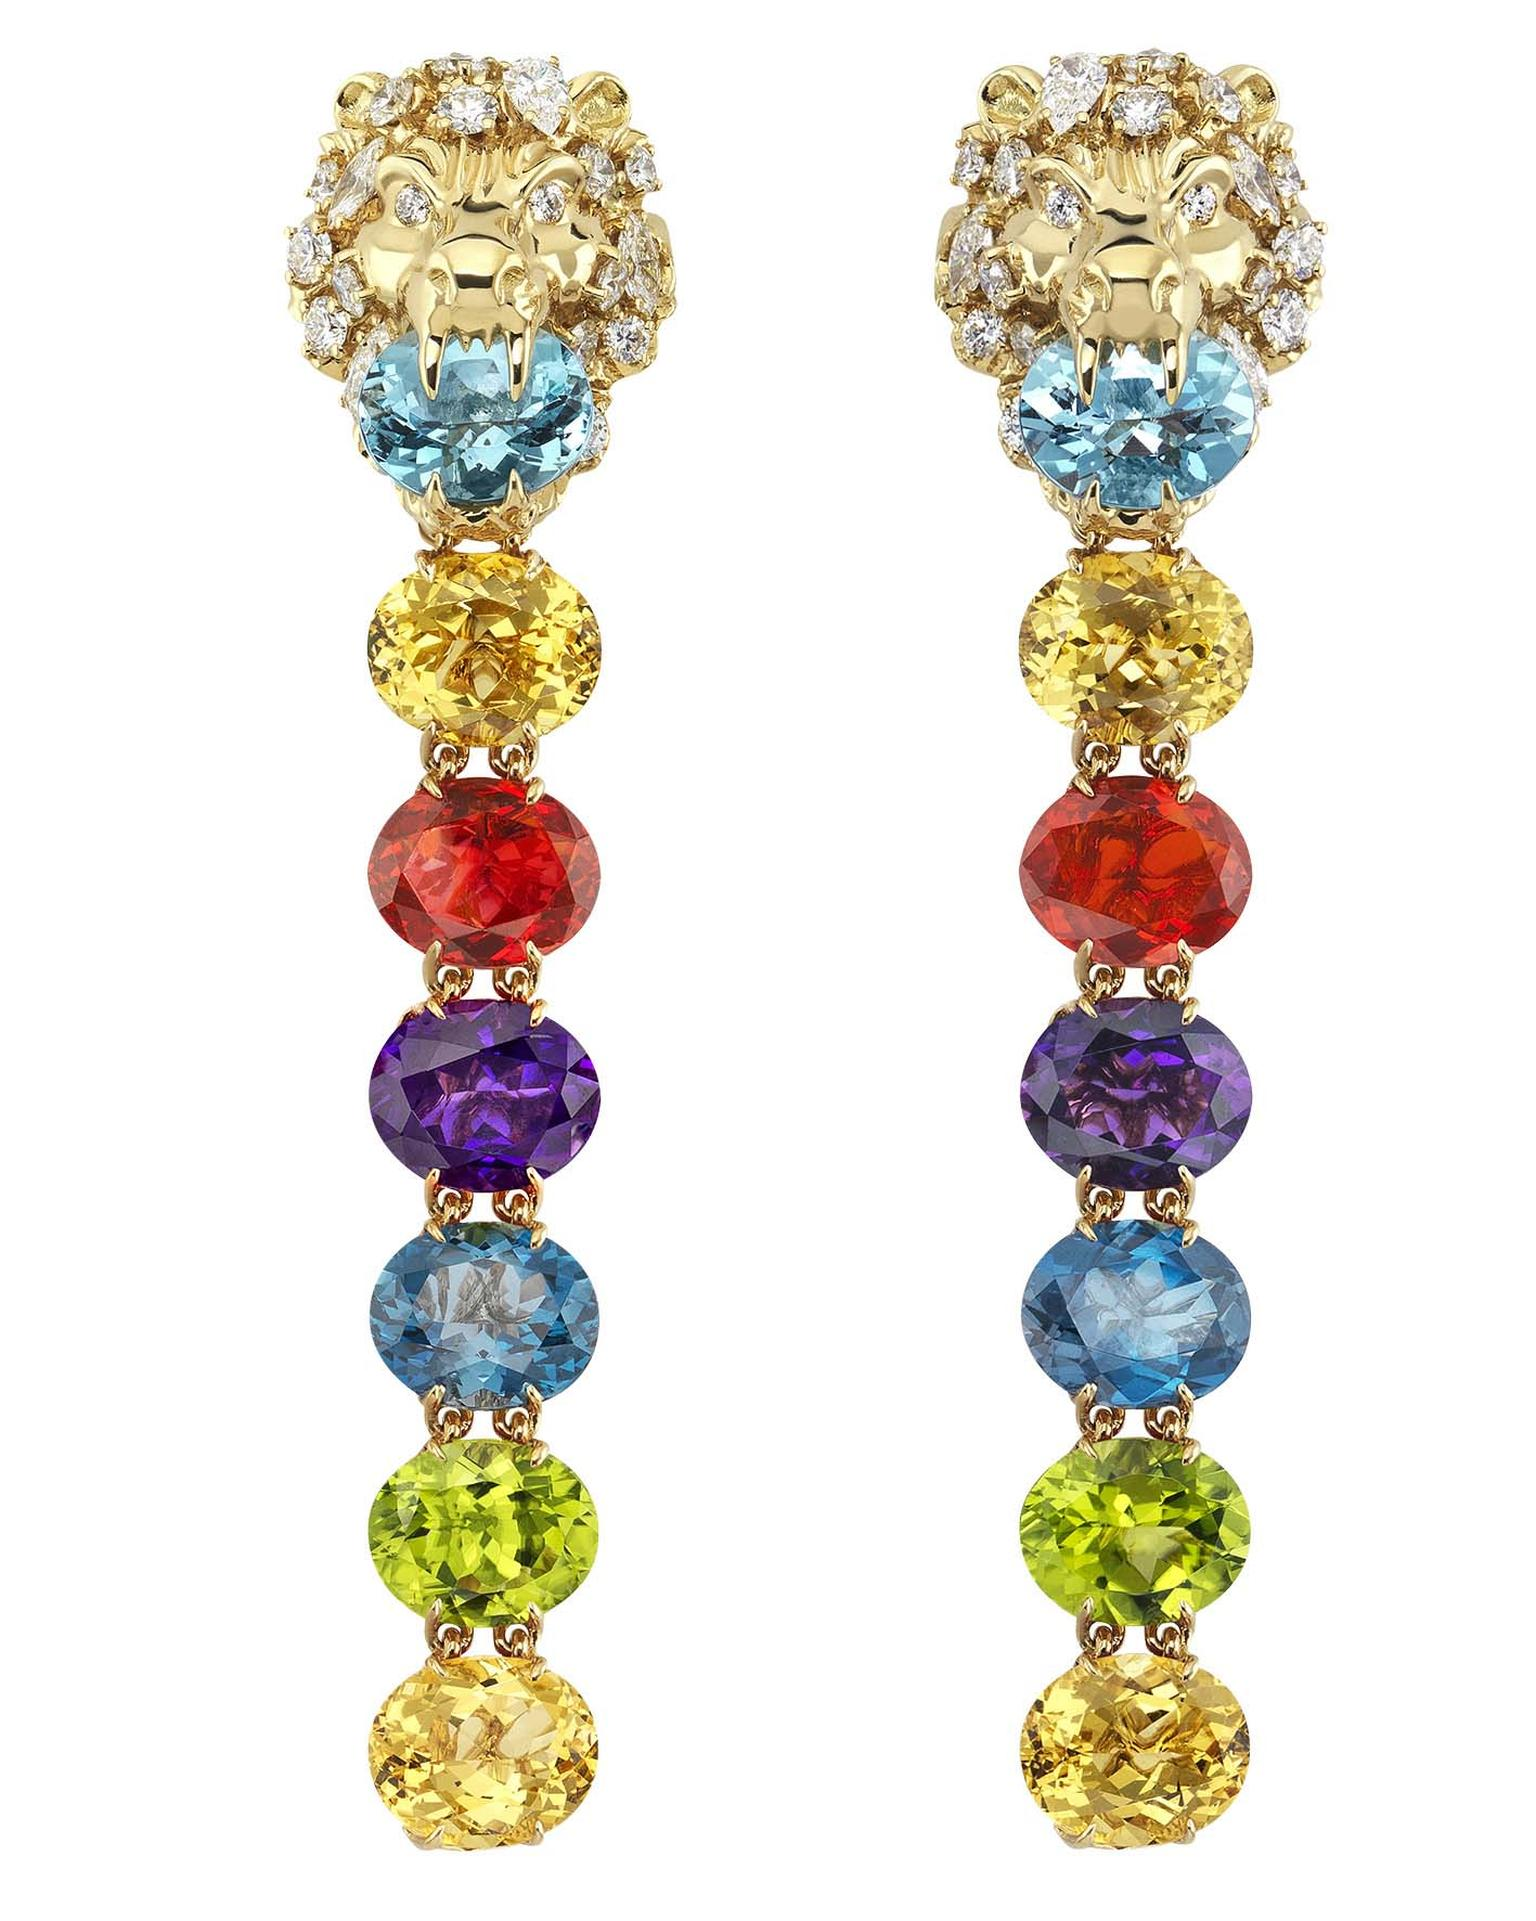 Gucci Hortus Deliciarum Lion Head earrings